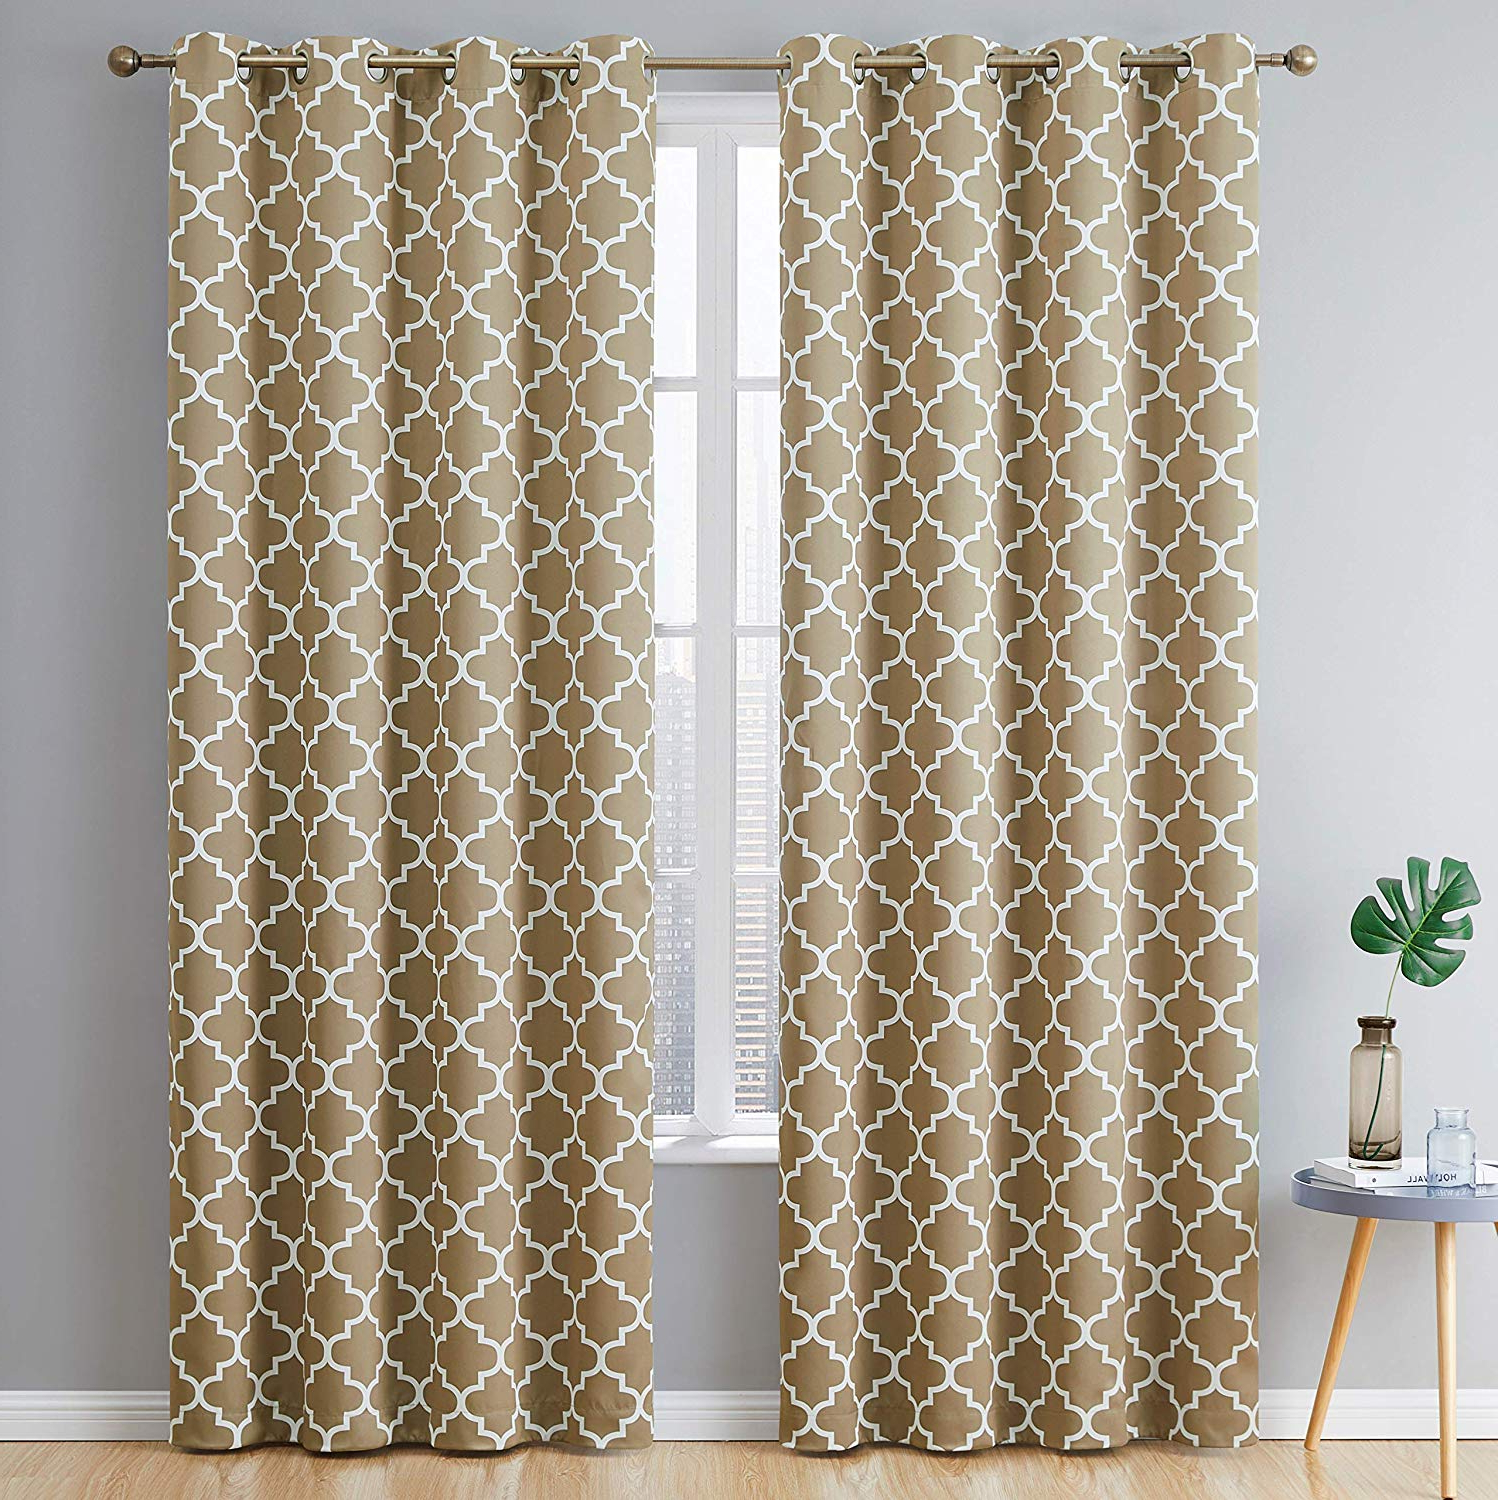 Current Hlc Lattice Print Thermal Insulated Blackout Window Curtain Panels, Pair, Chrome Grommet Top, Taupe In Grommet Top Thermal Insulated Blackout Curtain Panel Pairs (View 6 of 20)